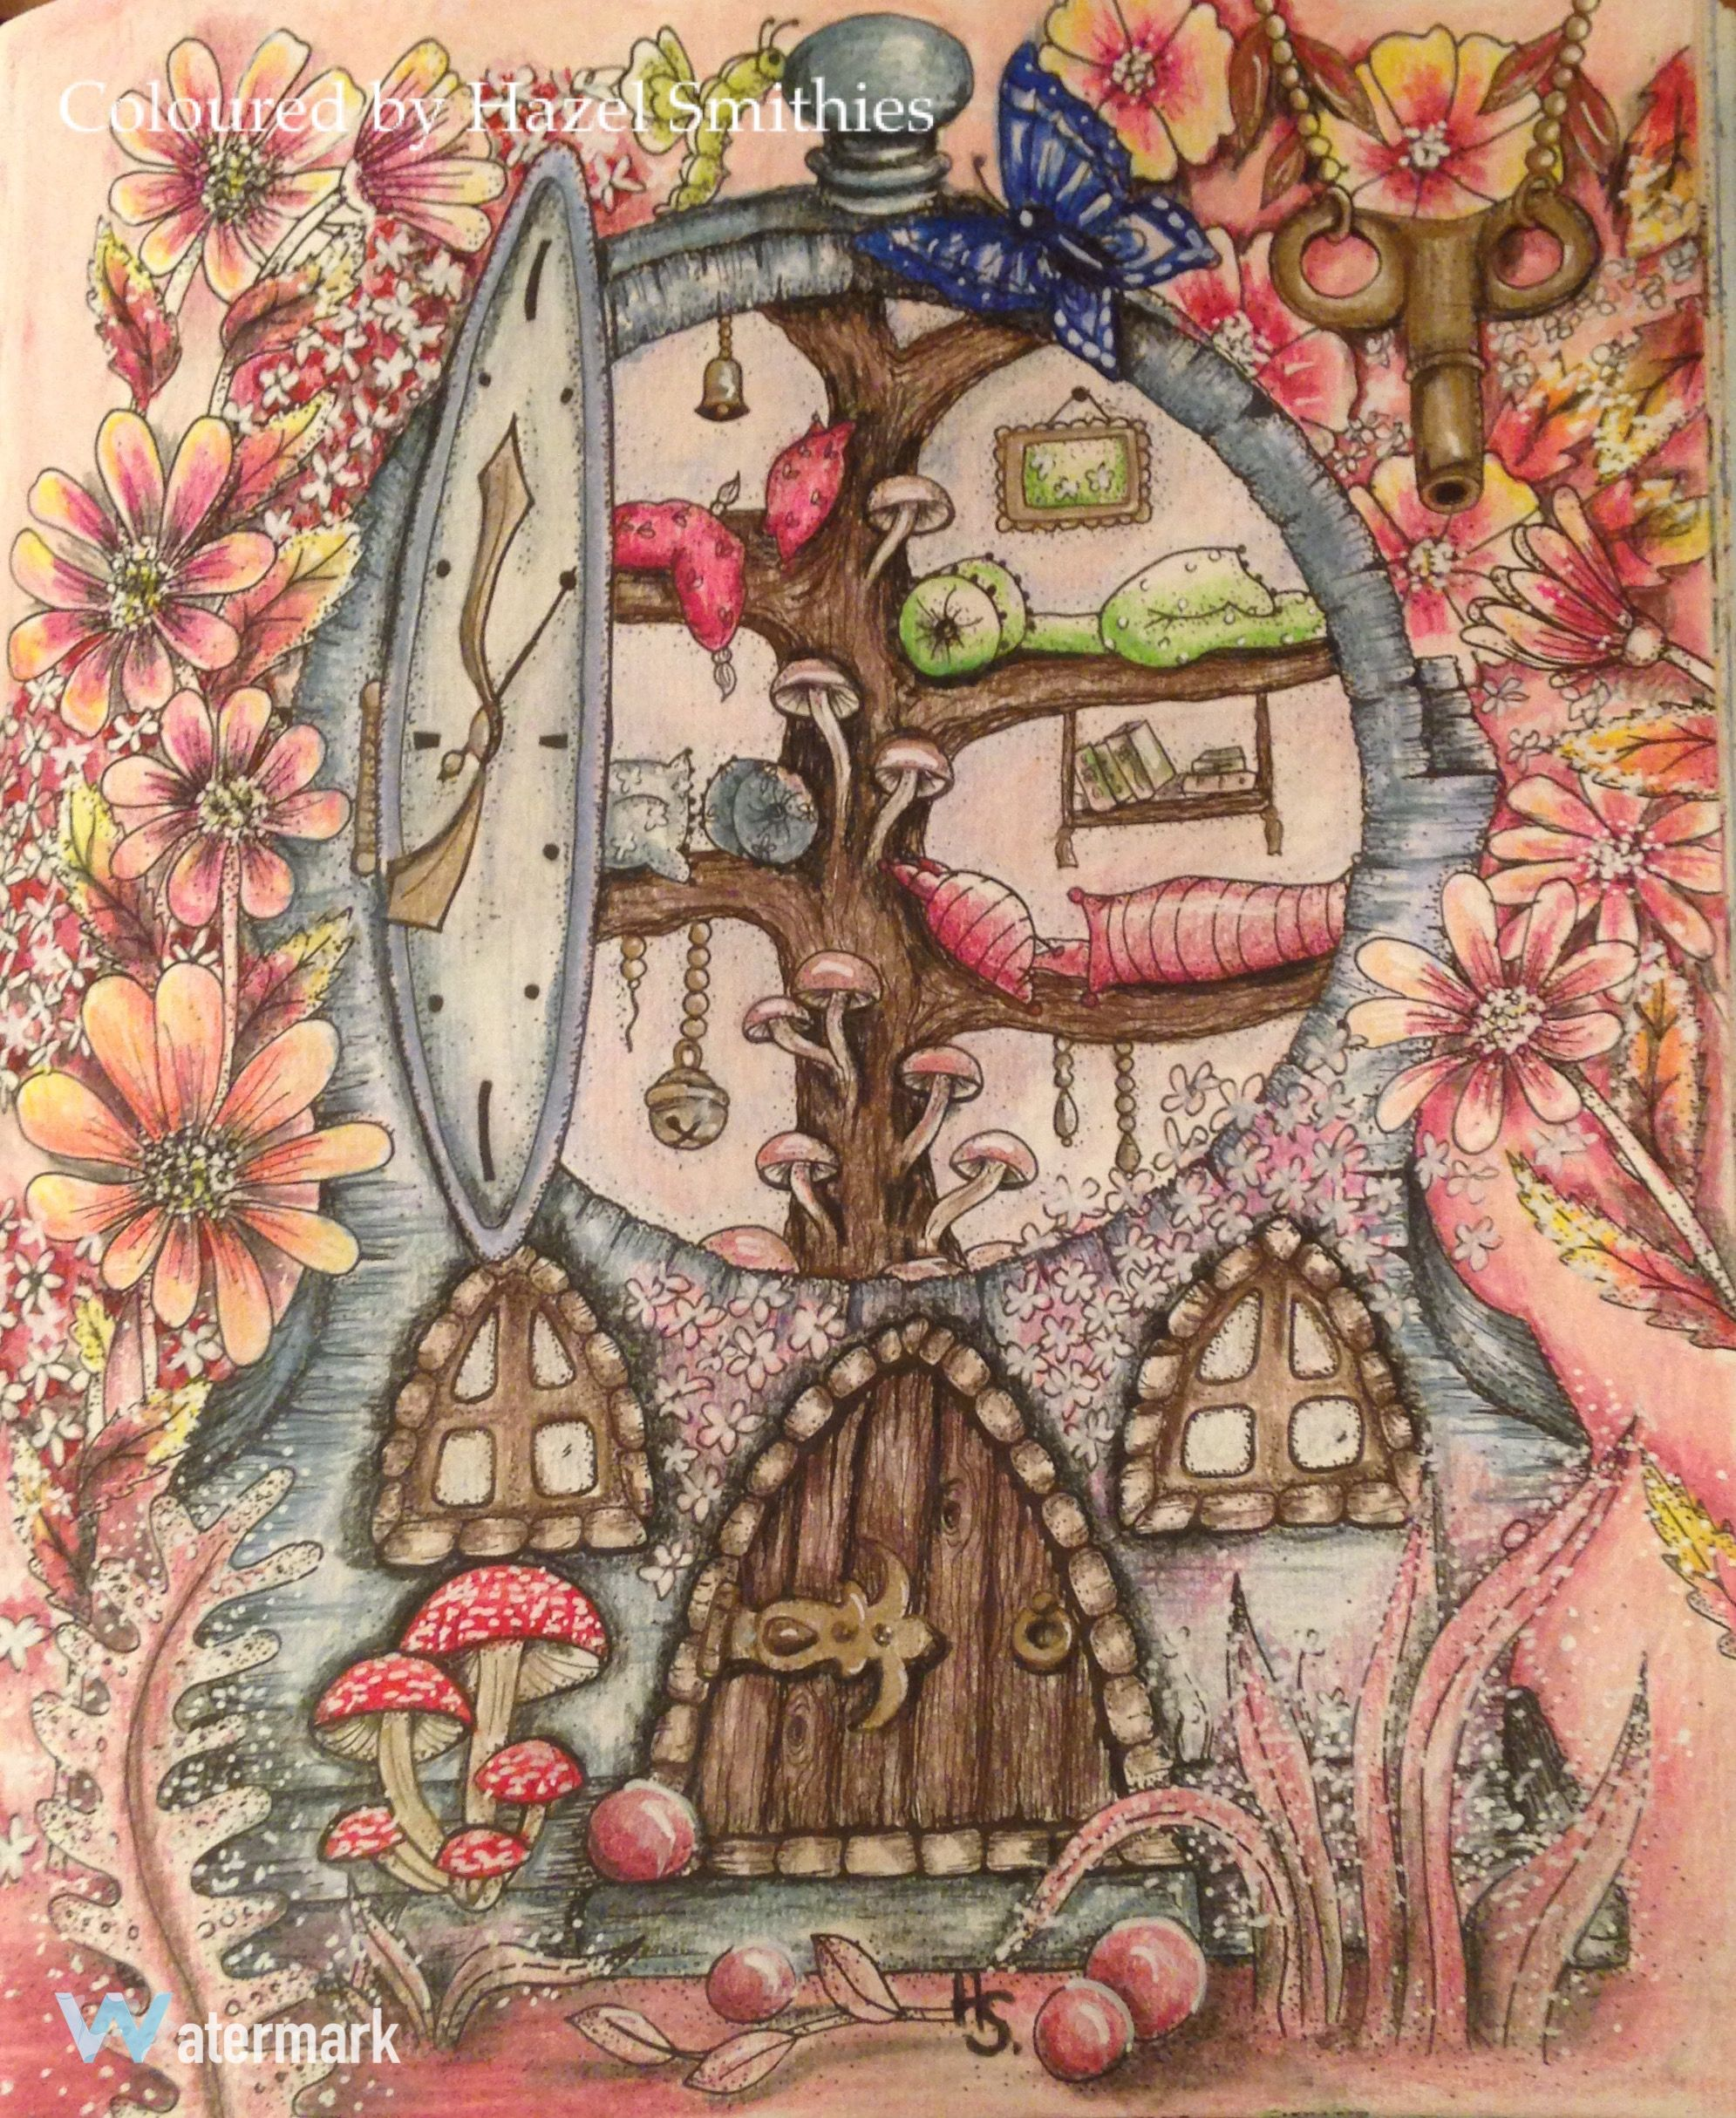 Enchanted forest coloring book youtube - Fairy House From Carovne Lahodnosti Magical Delights By Klara Markova In Prismacolor Premier Pencils Coloring Booksadult